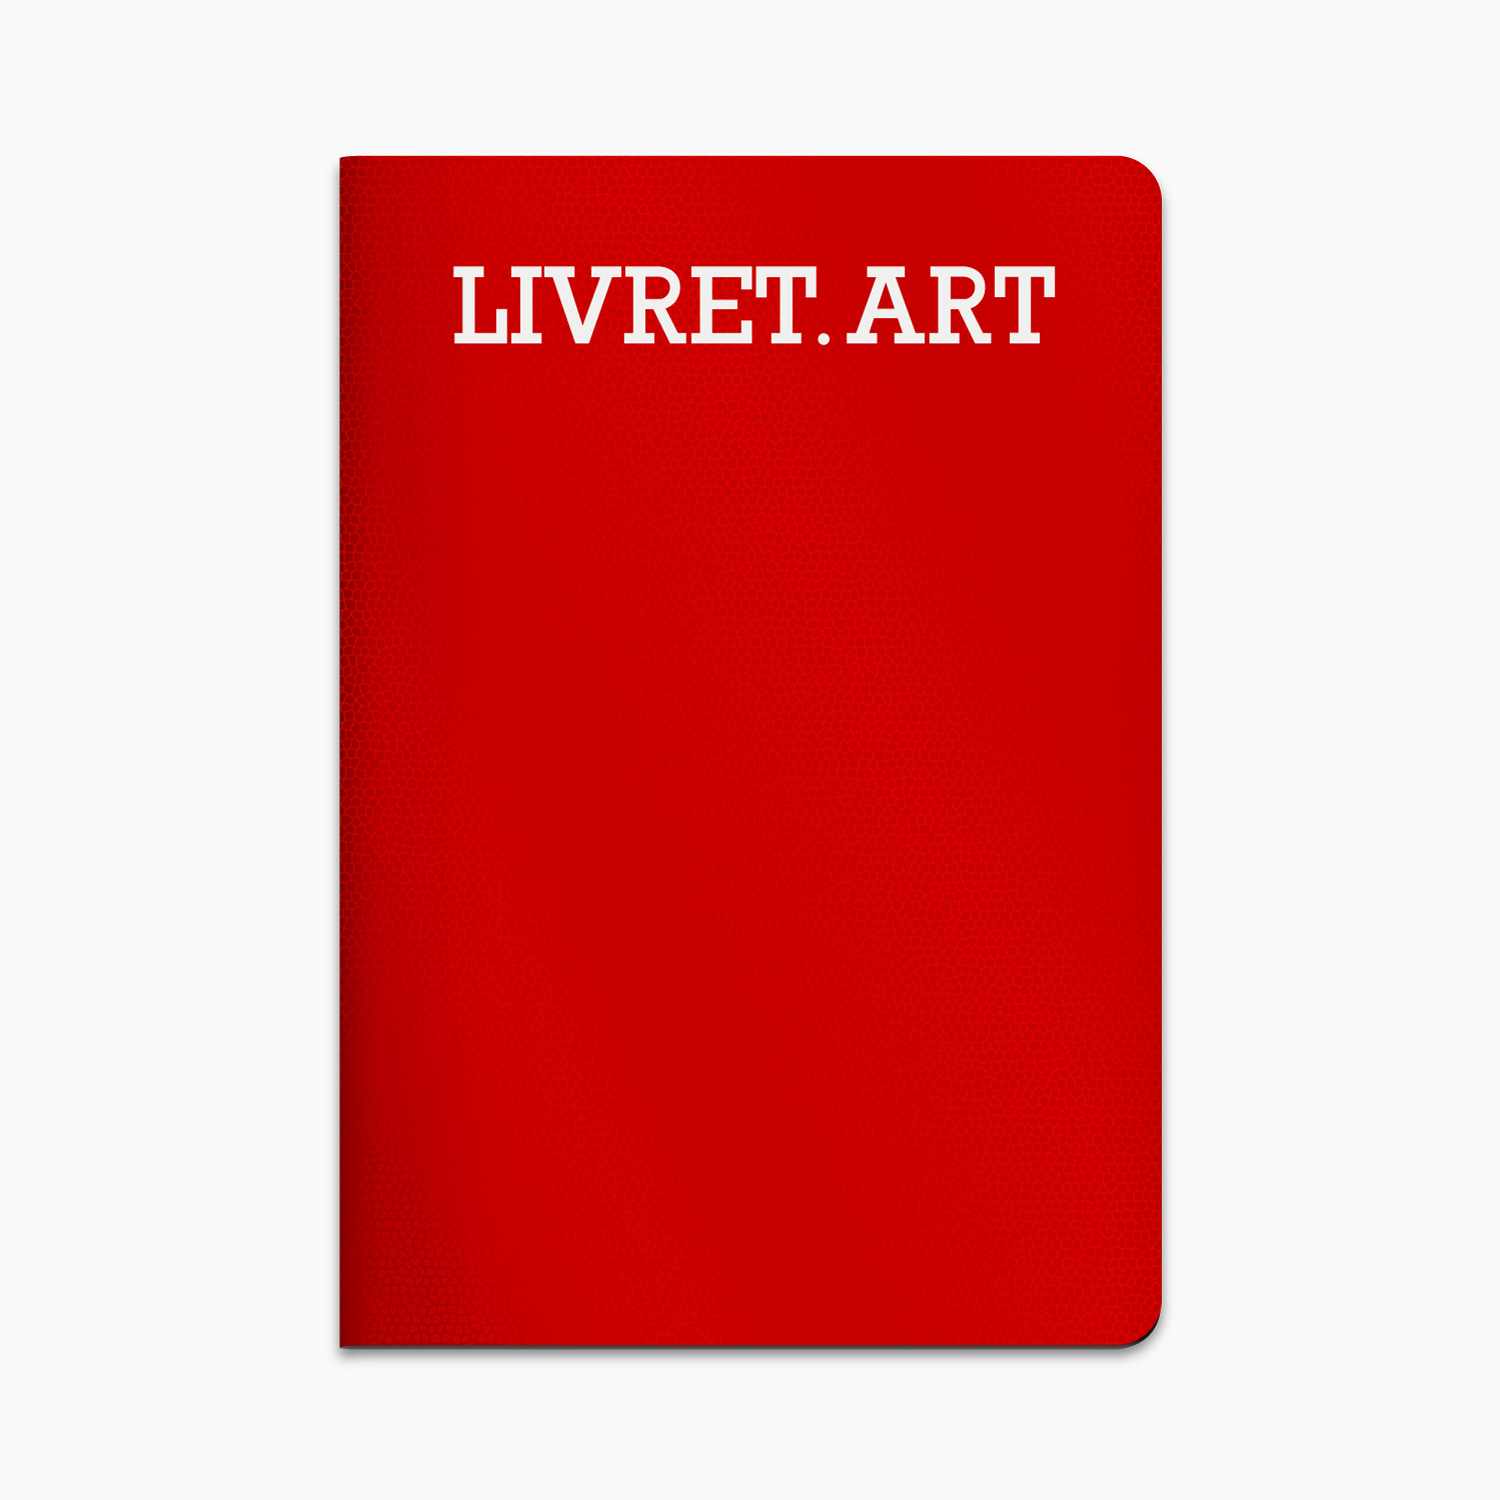 Livret Art, l'alternative au Livret A